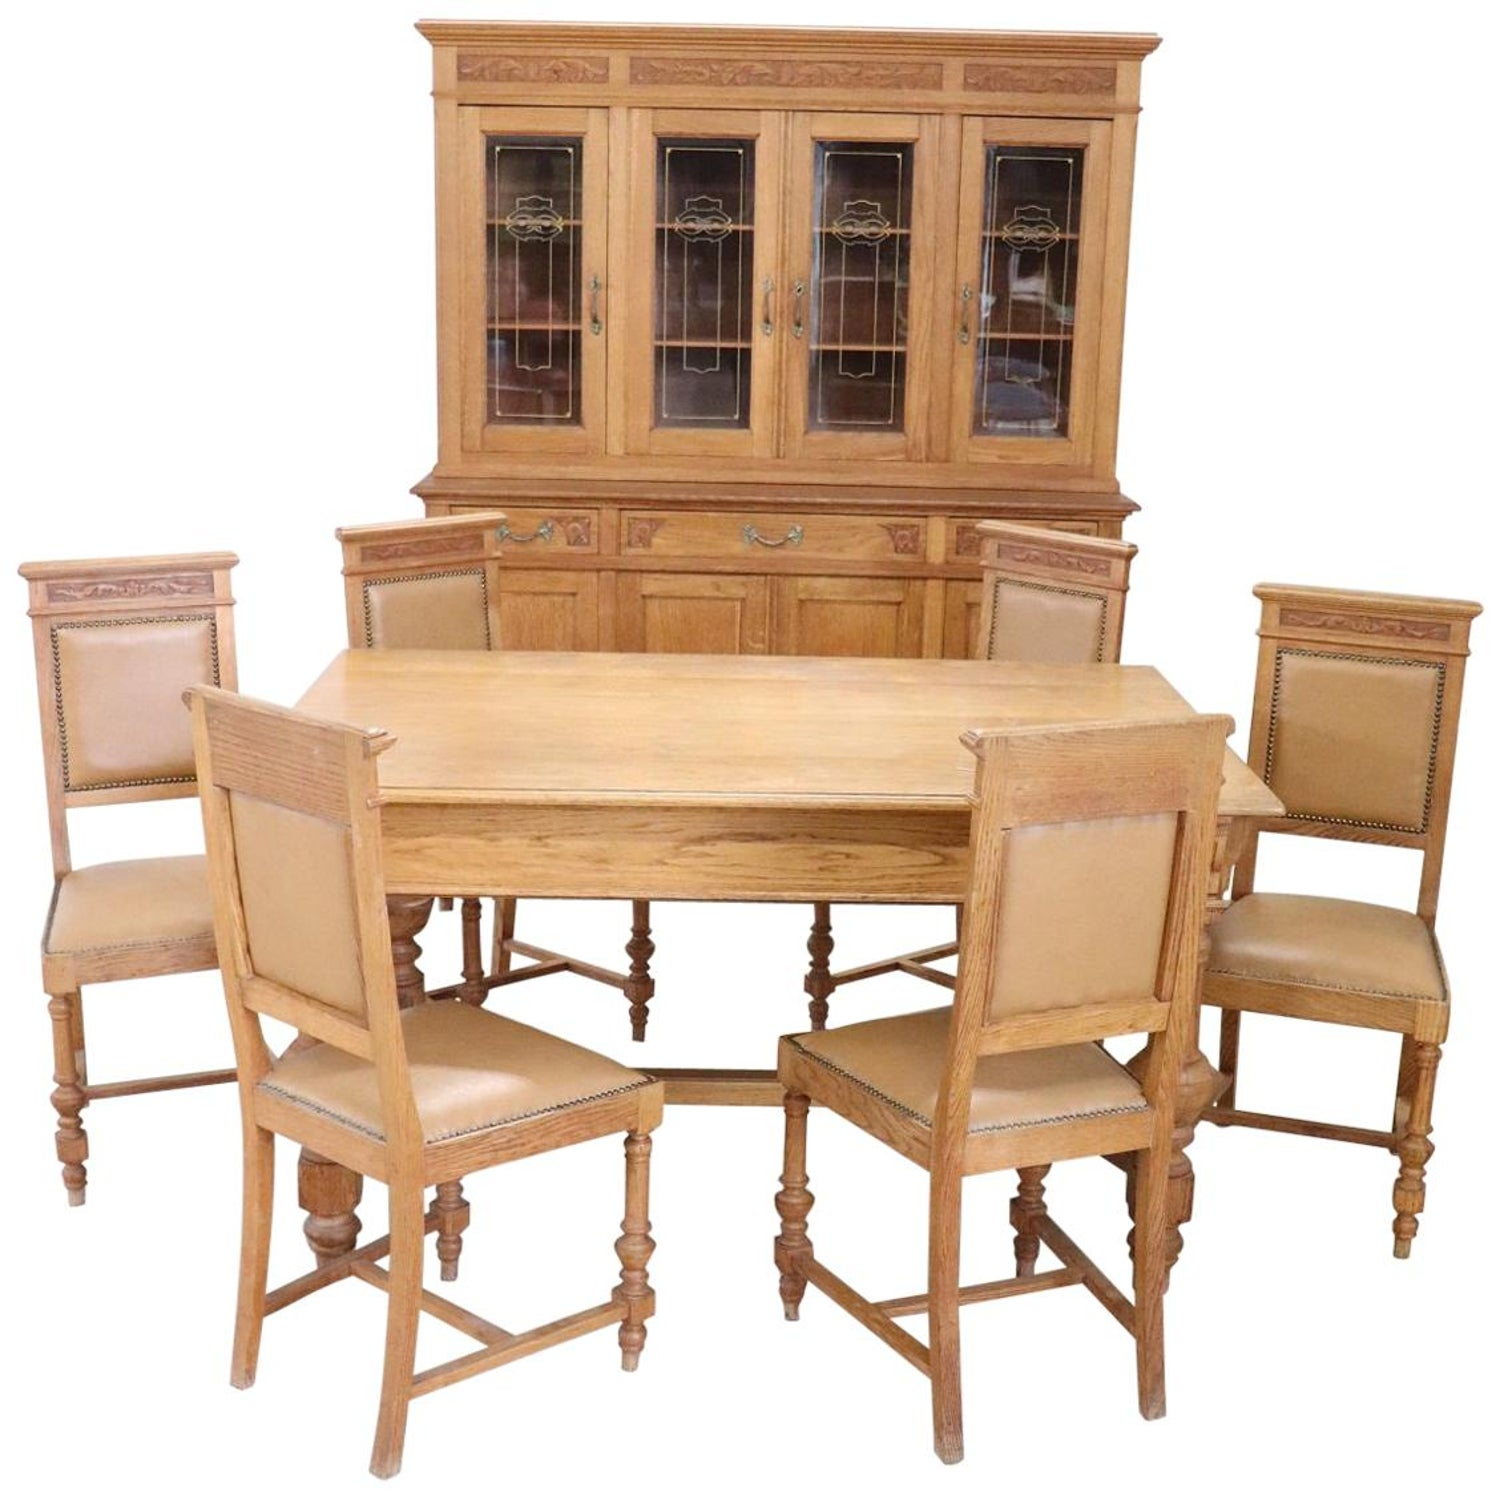 20th Century Italian Art Nouveau Solid Chestnut Wood Dining Room Set 8 Pieces For Sale At 1stdibs